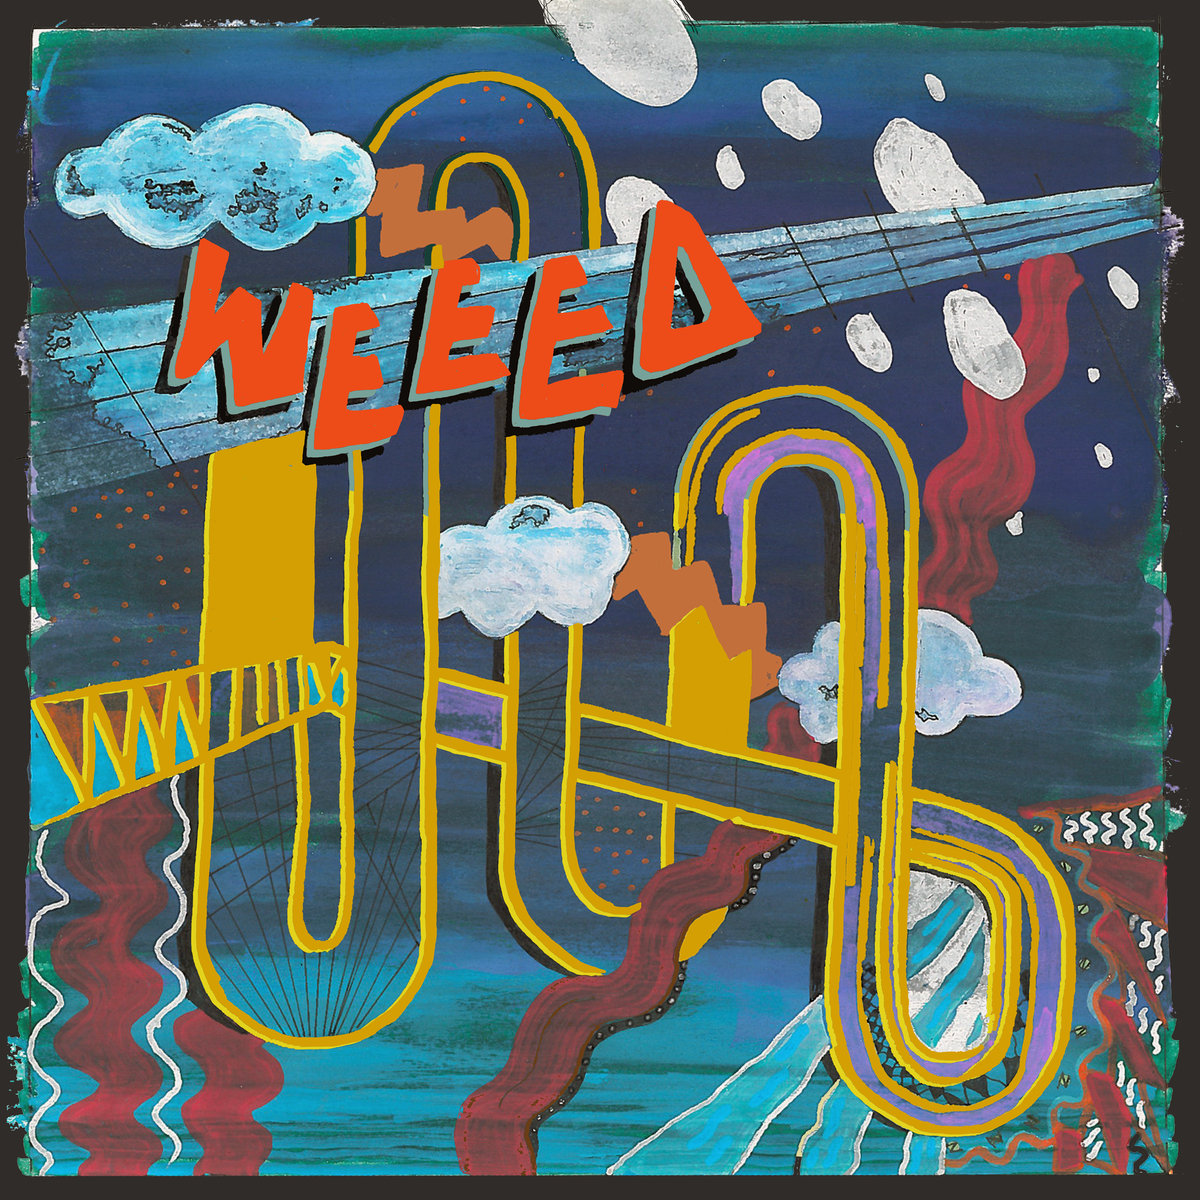 Review of 'You are the Sky' album by Weeed on Halfshell Records